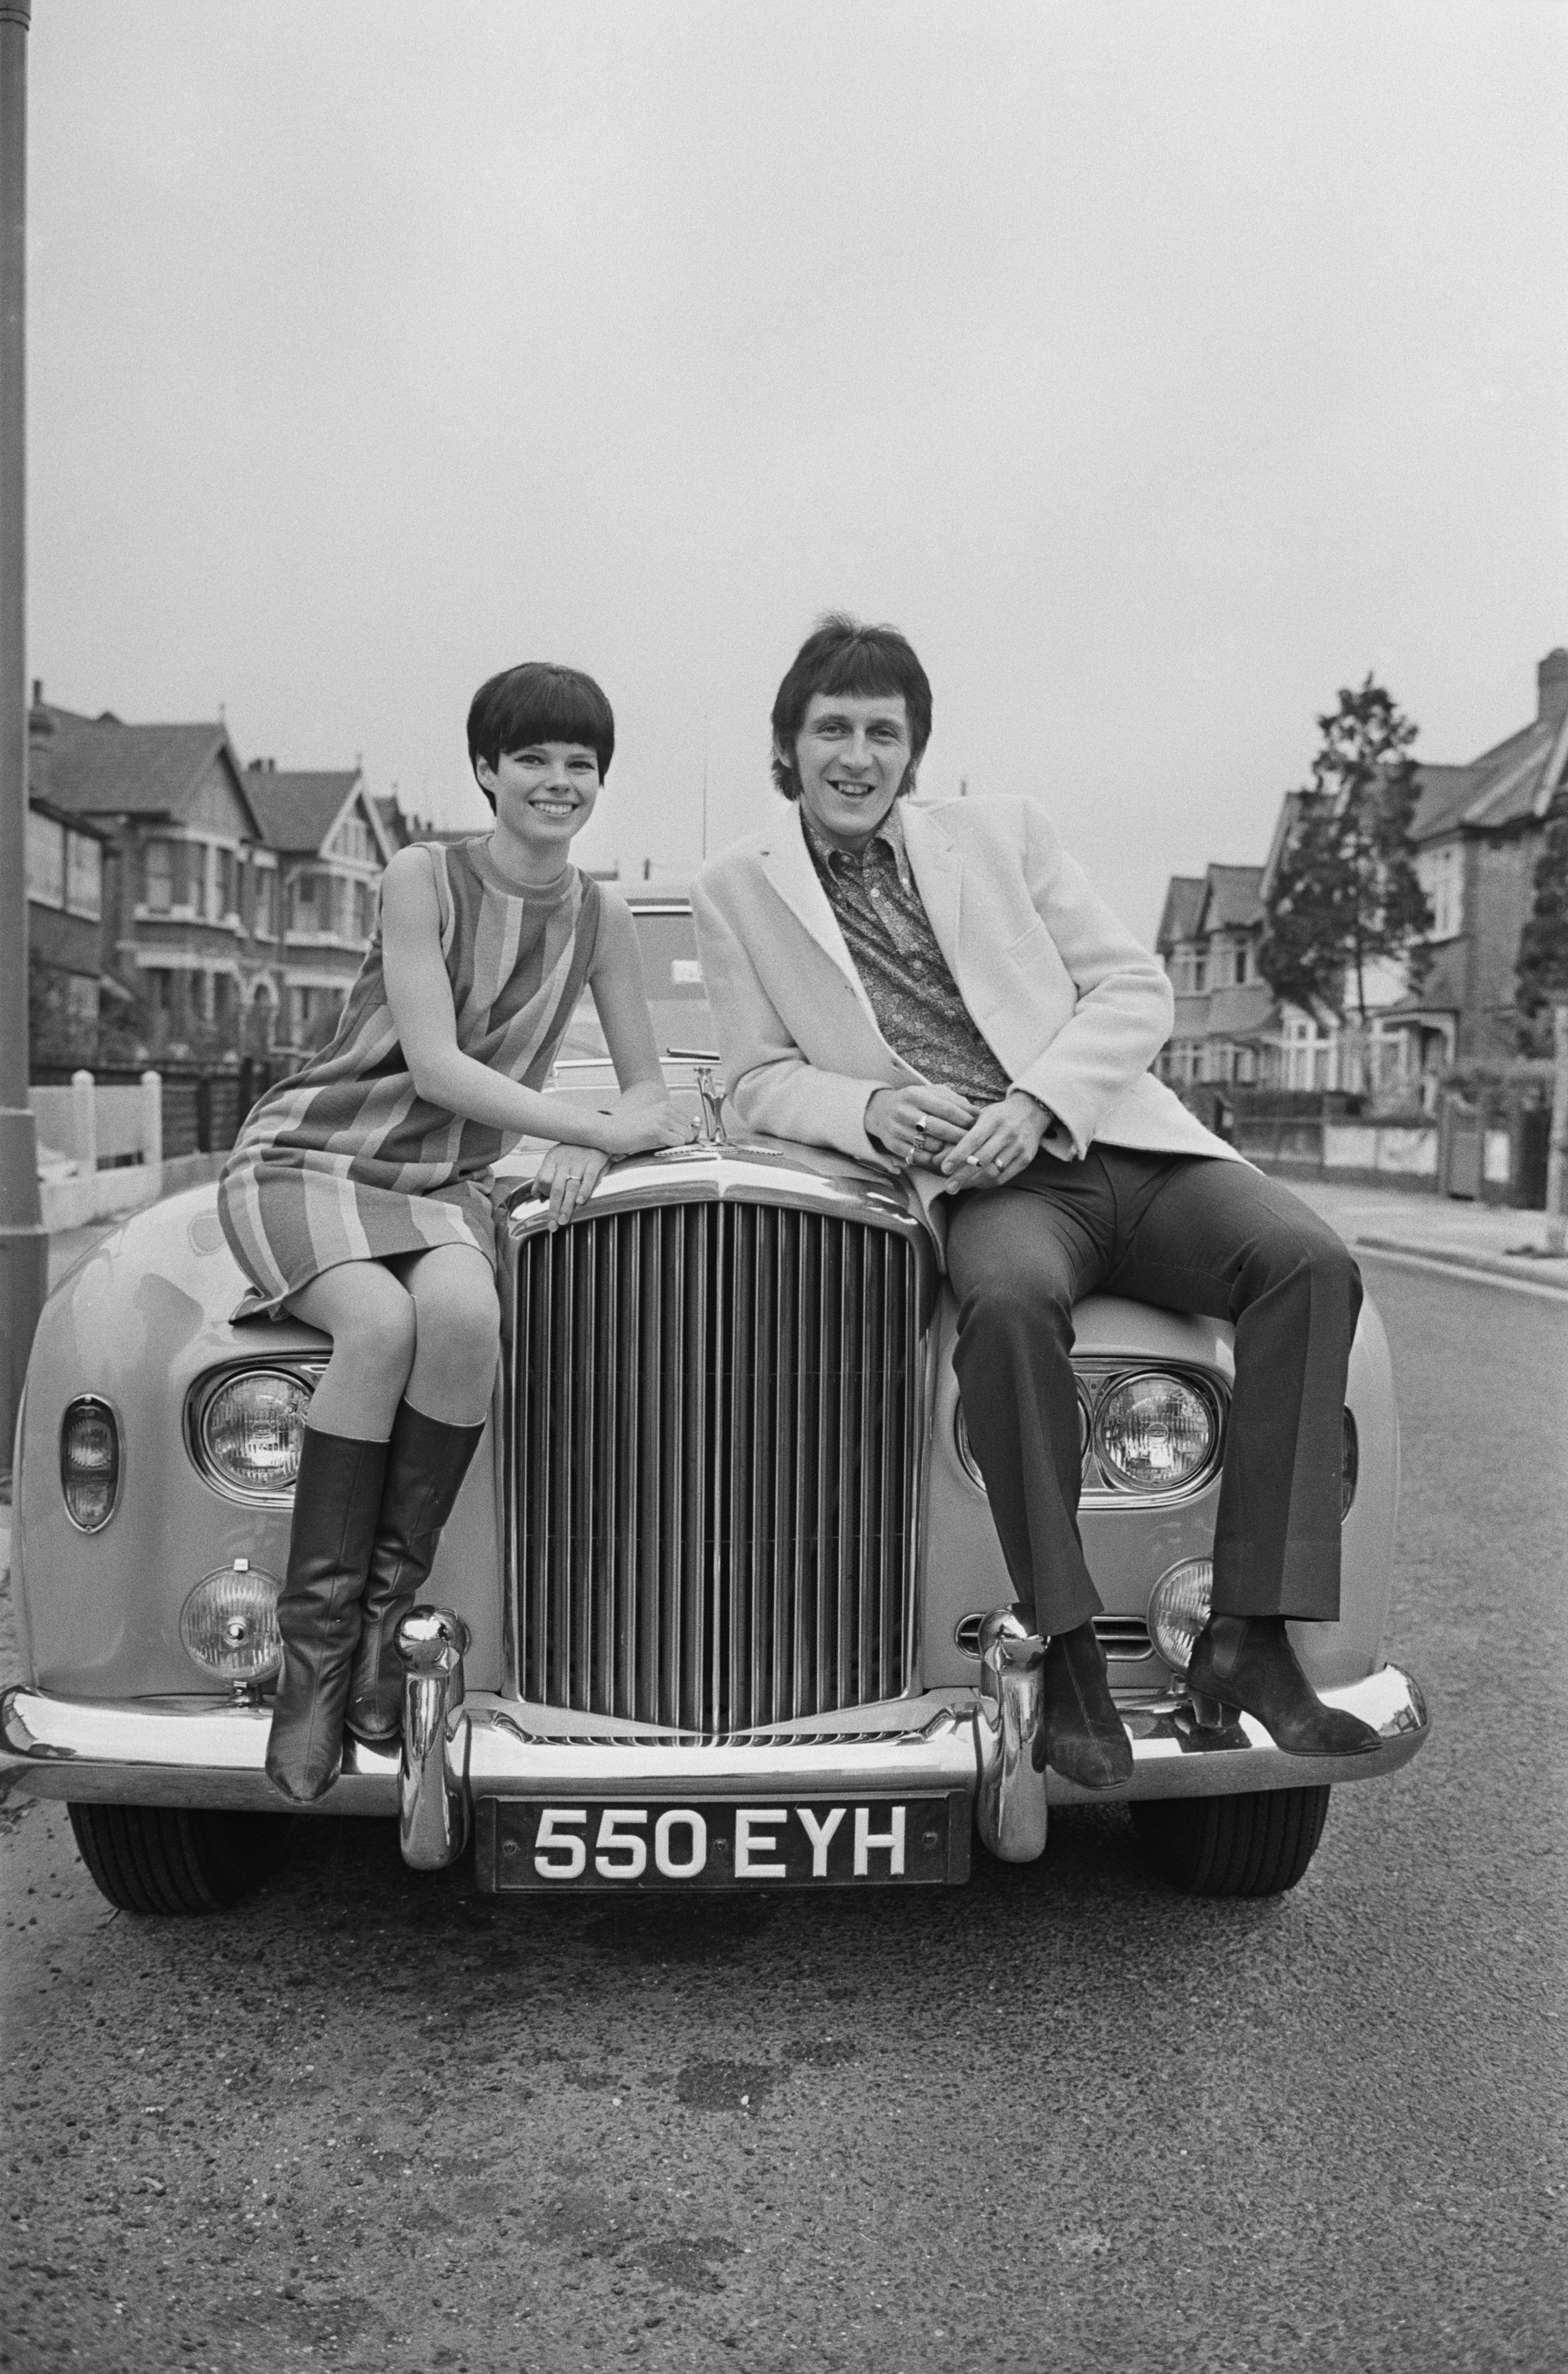 English bass guitarist for 'The Who' John Entwistle and Alison Wise on the bonnet of a Rolls Royce car, 17th March 1967. (Photo by Stan Meagher/Daily Express/Hulton Archive/Getty Images)